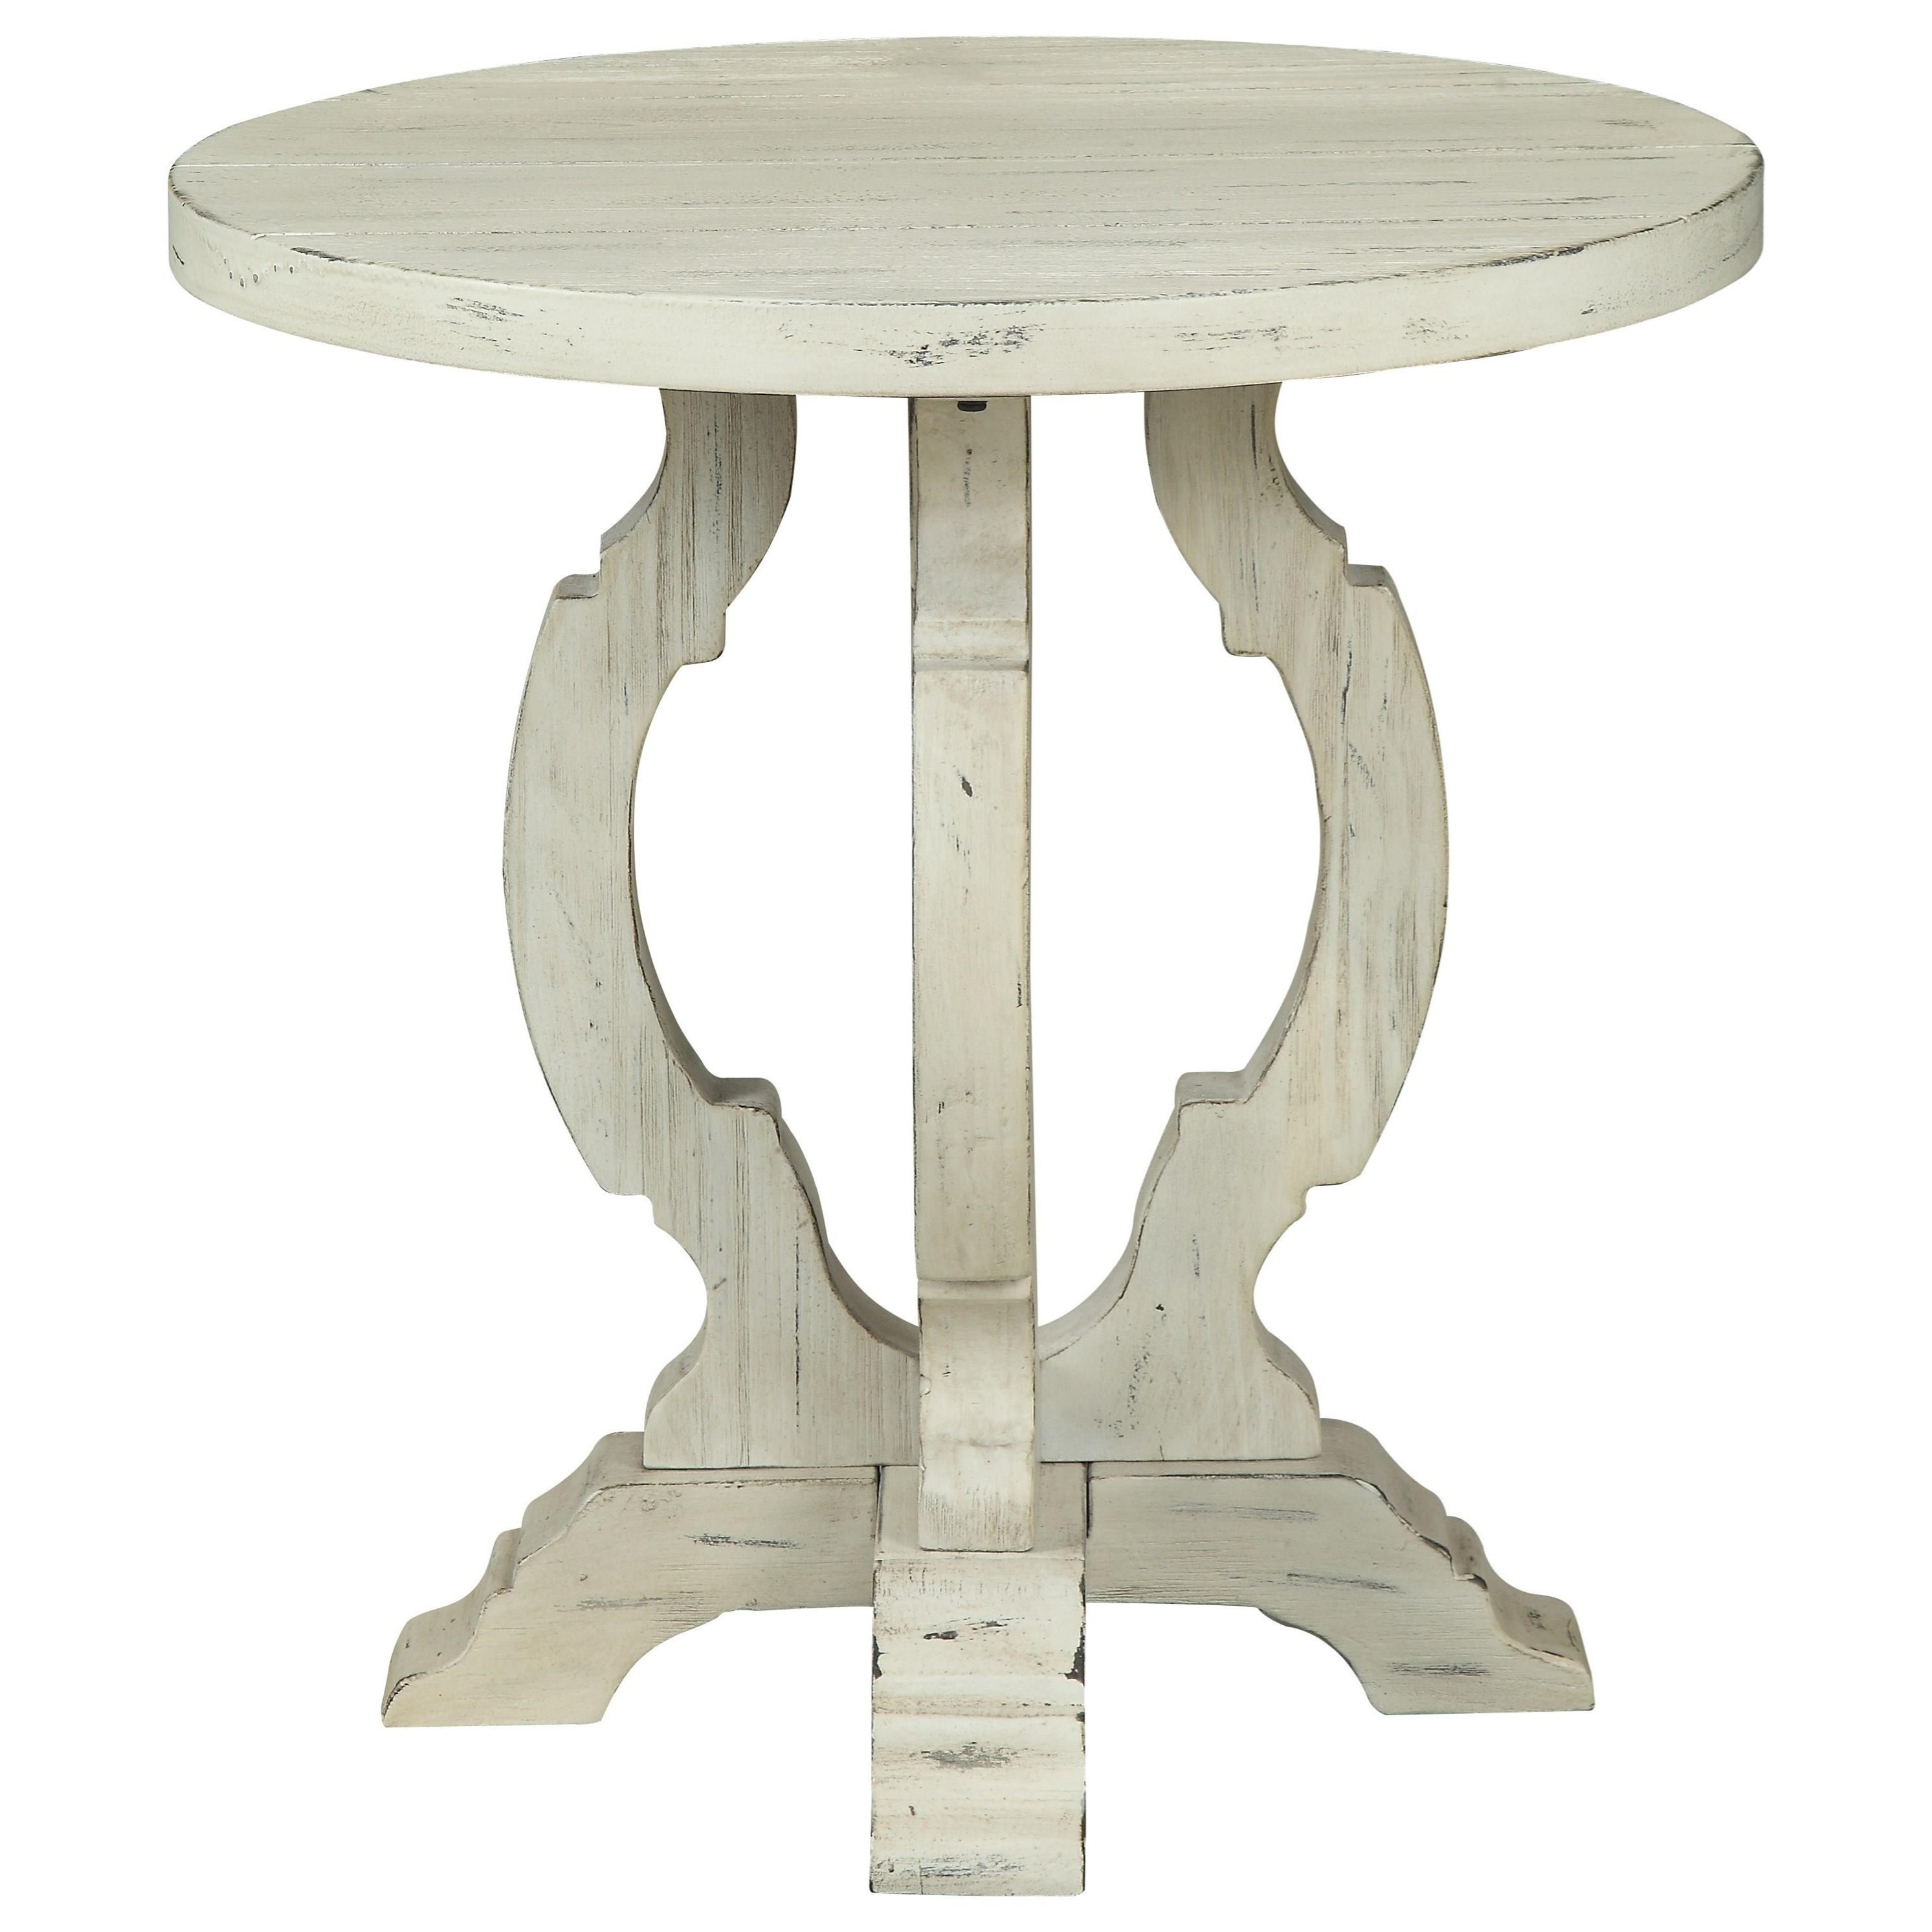 Shown In: Coast To Coast Imports Orchard Park Orchard Park Accent Table